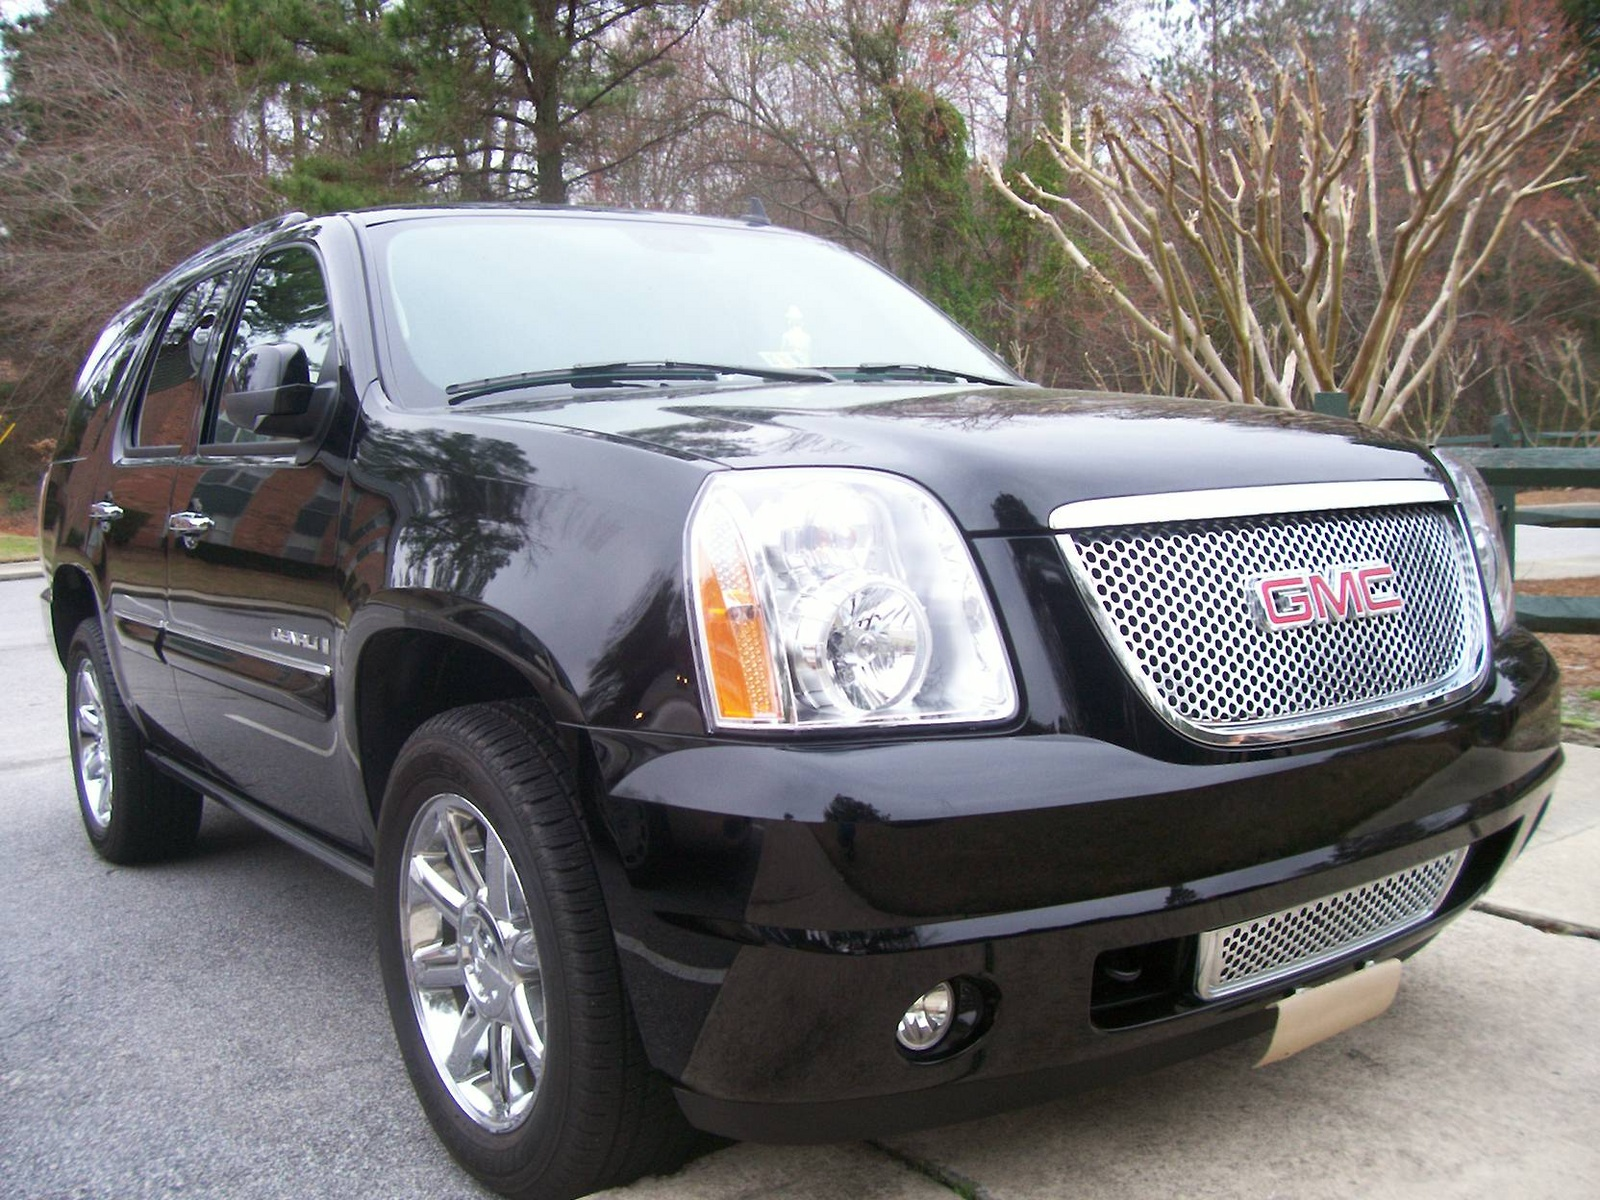 2008 gmc yukon denali pictures cargurus. Black Bedroom Furniture Sets. Home Design Ideas